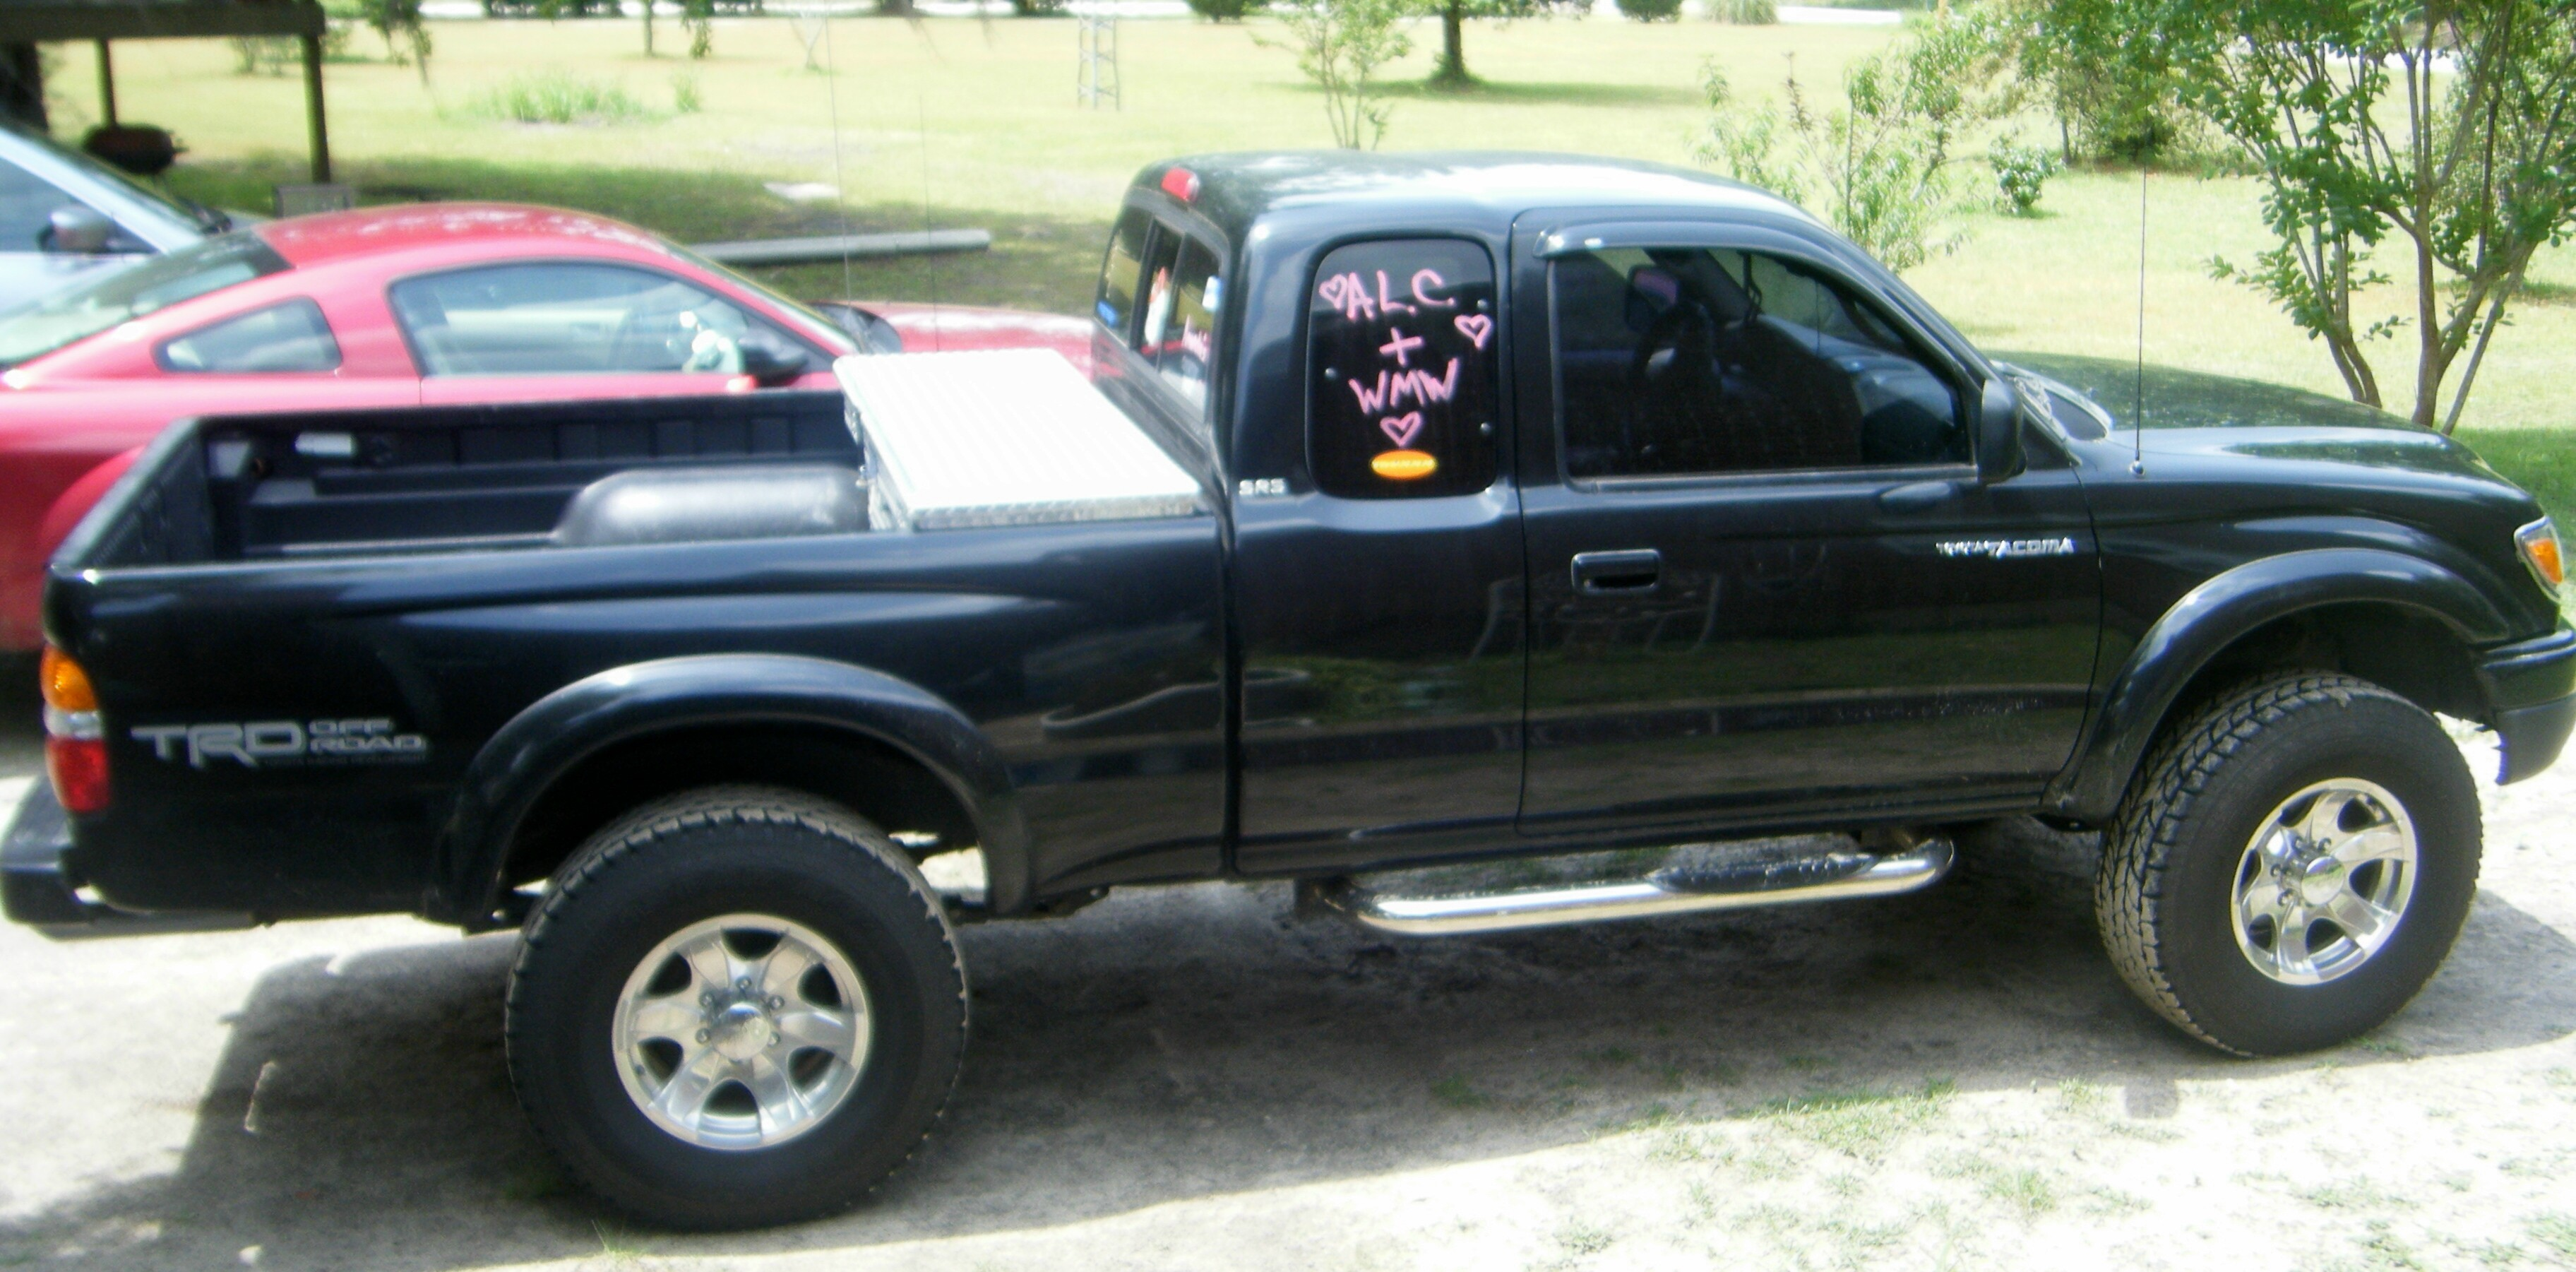 browning08 2002 toyota tacoma xtra cab specs photos modification info at cardomain. Black Bedroom Furniture Sets. Home Design Ideas